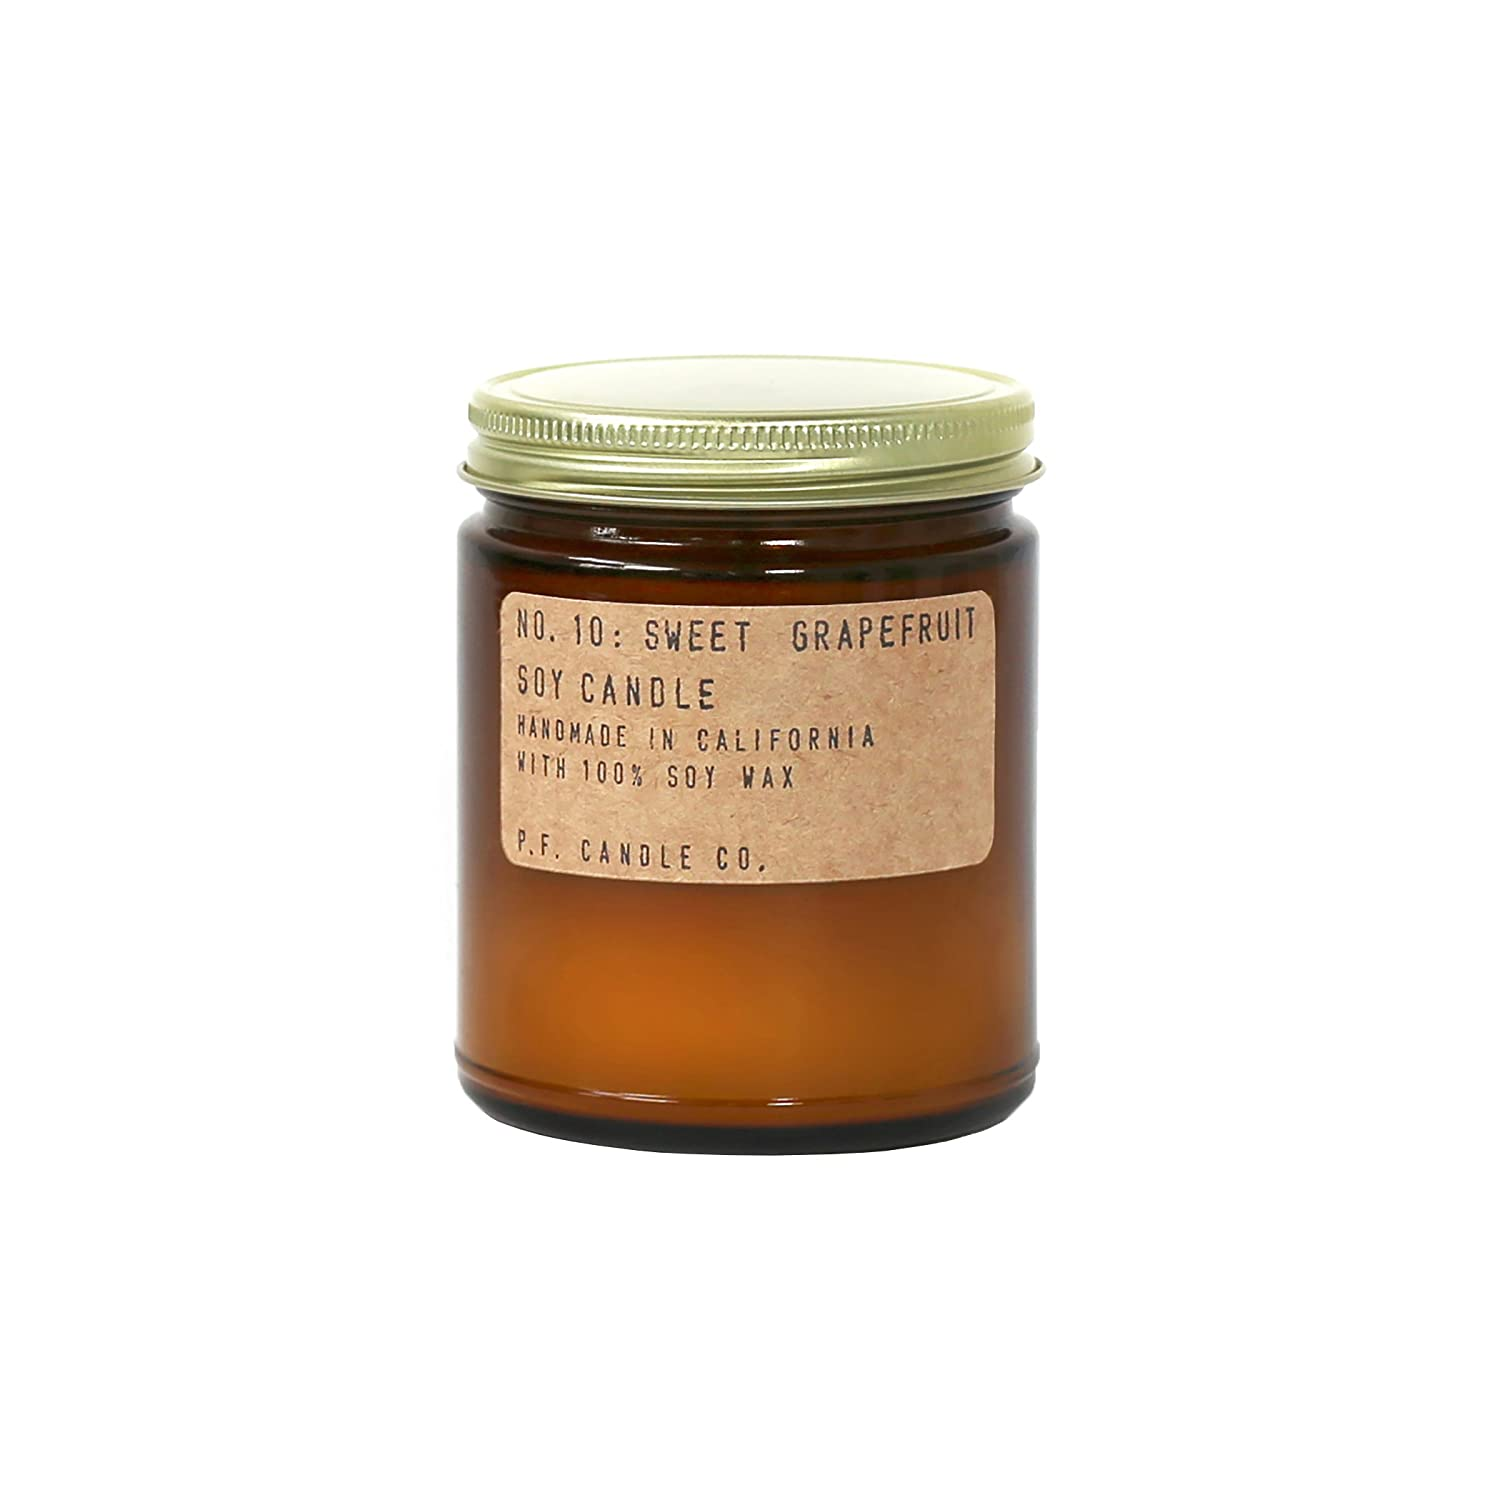 P.F. Candle Co.. - No. 10: Sweet Grapefruit Soy Candle (3.5 oz) 0855111006201